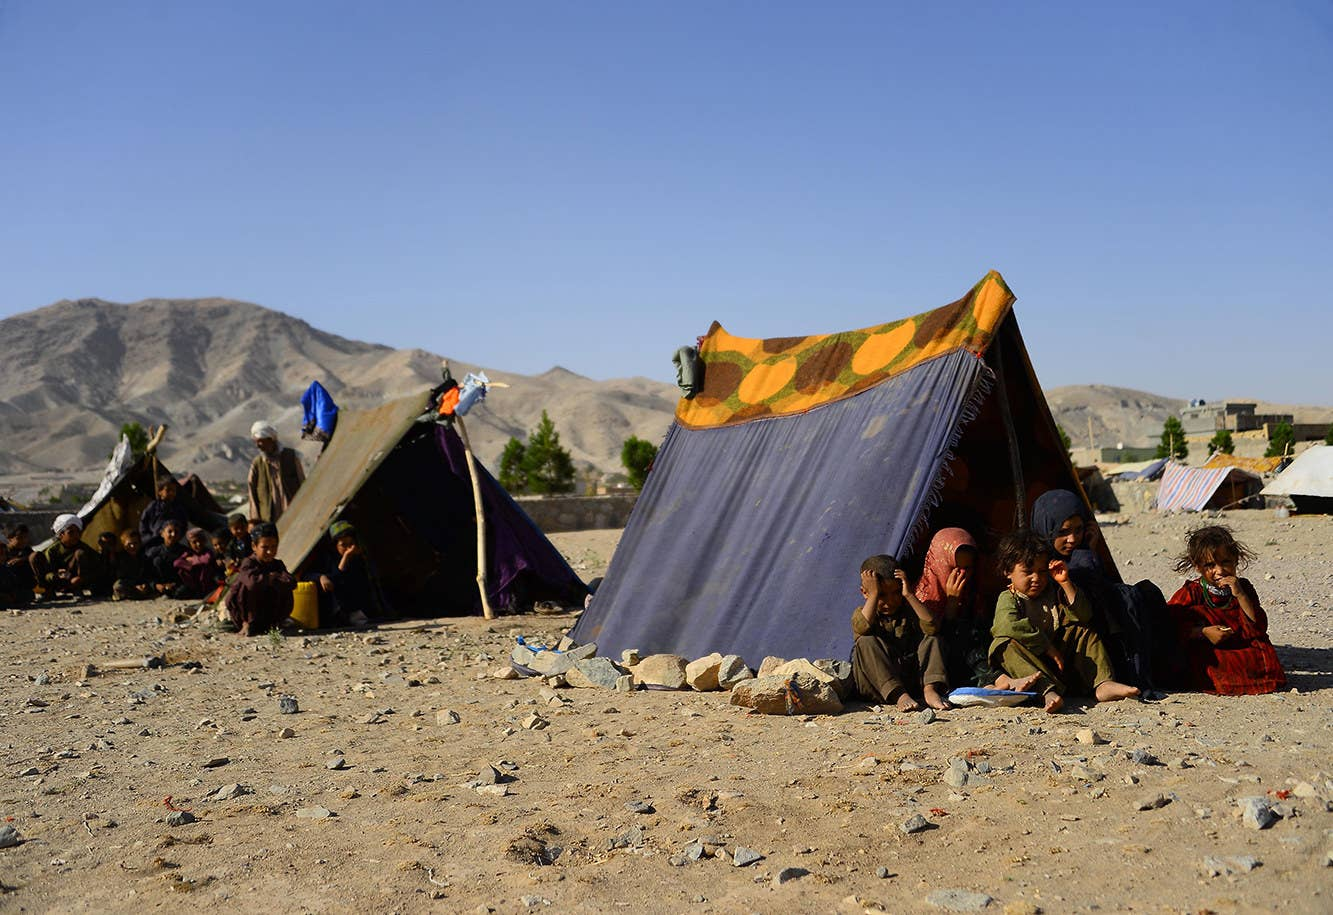 Drought-displaced Afghan children at their tent at a camp for internally displaced people in the Injil district of Herat province in Afghanistan on Aug. 3.